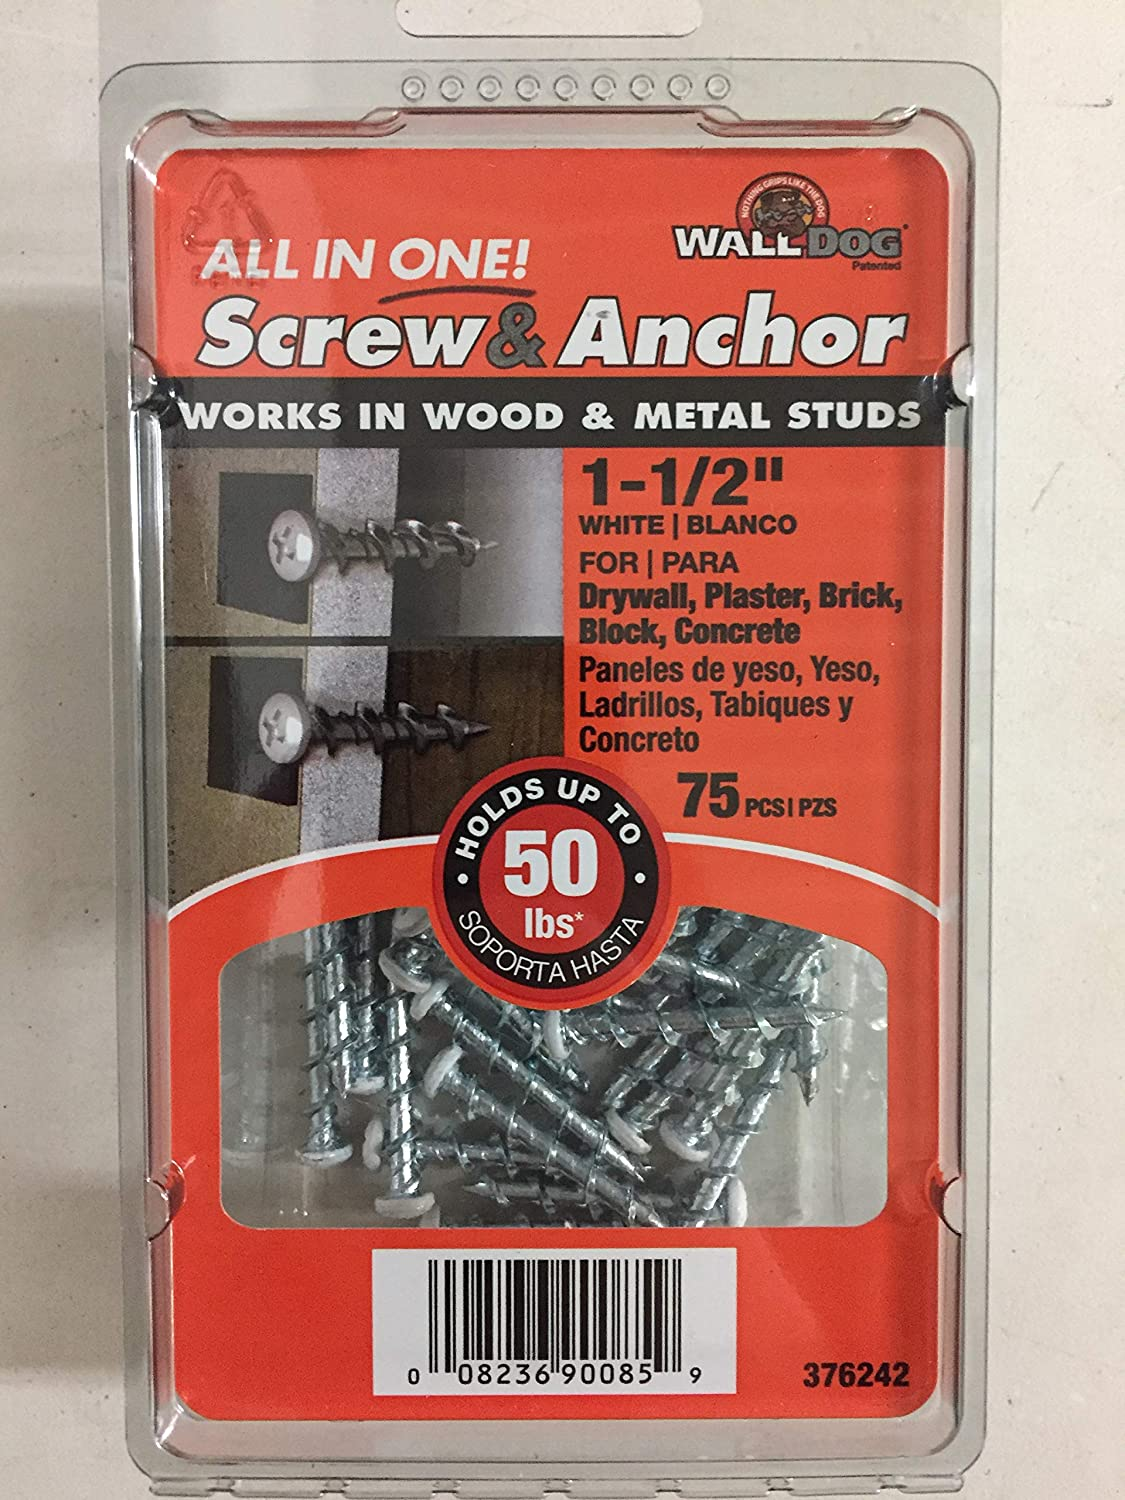 3 Pack The Hillman Group Wall Dog 376242 1-1//2 in Hi-Lo Steel Pan-Head Phillips Anchors 75-Count